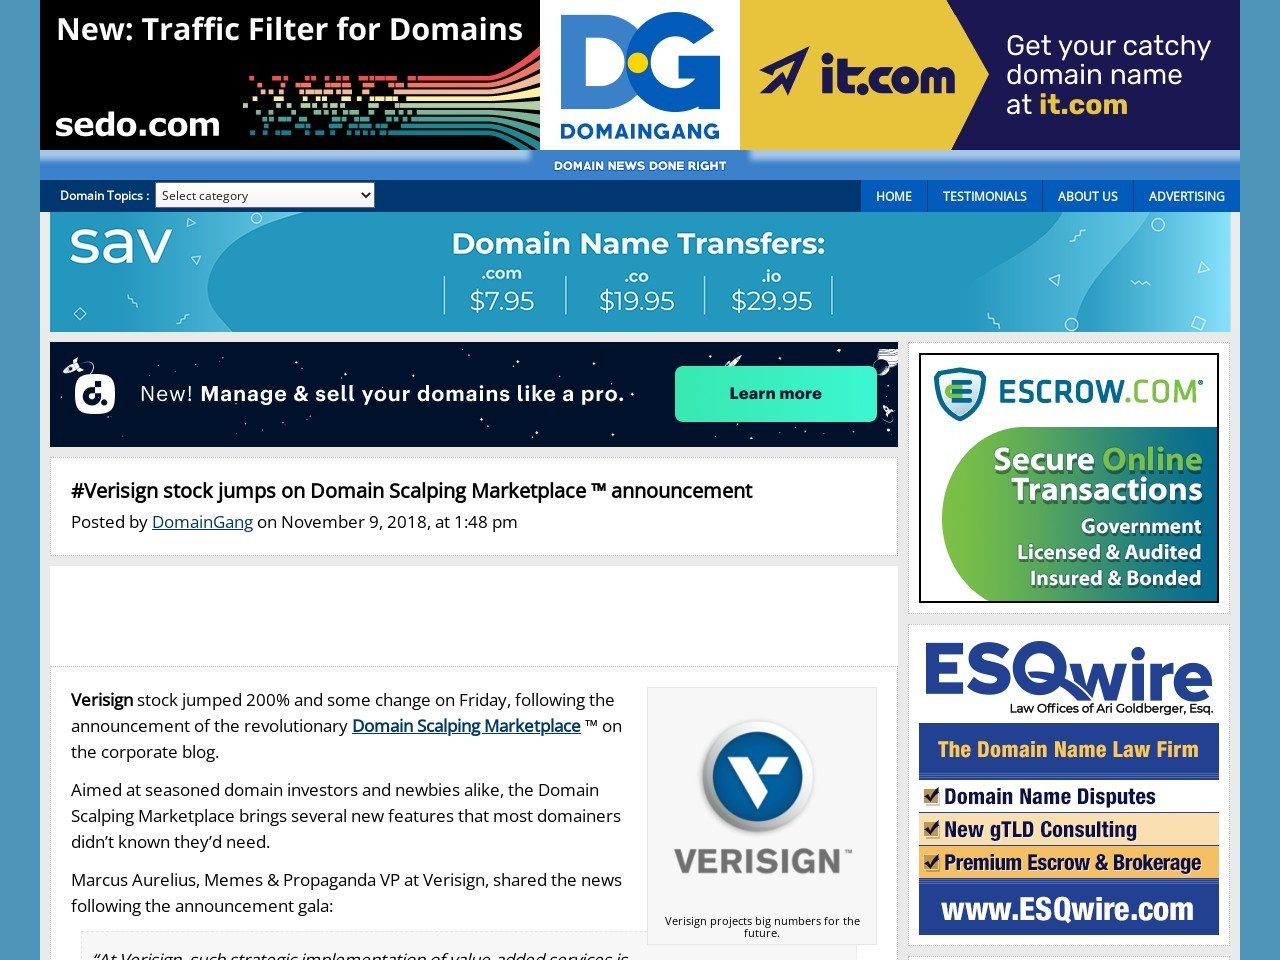 #Verisign stock jumps on Domain Scalping Marketplace ™ announcement